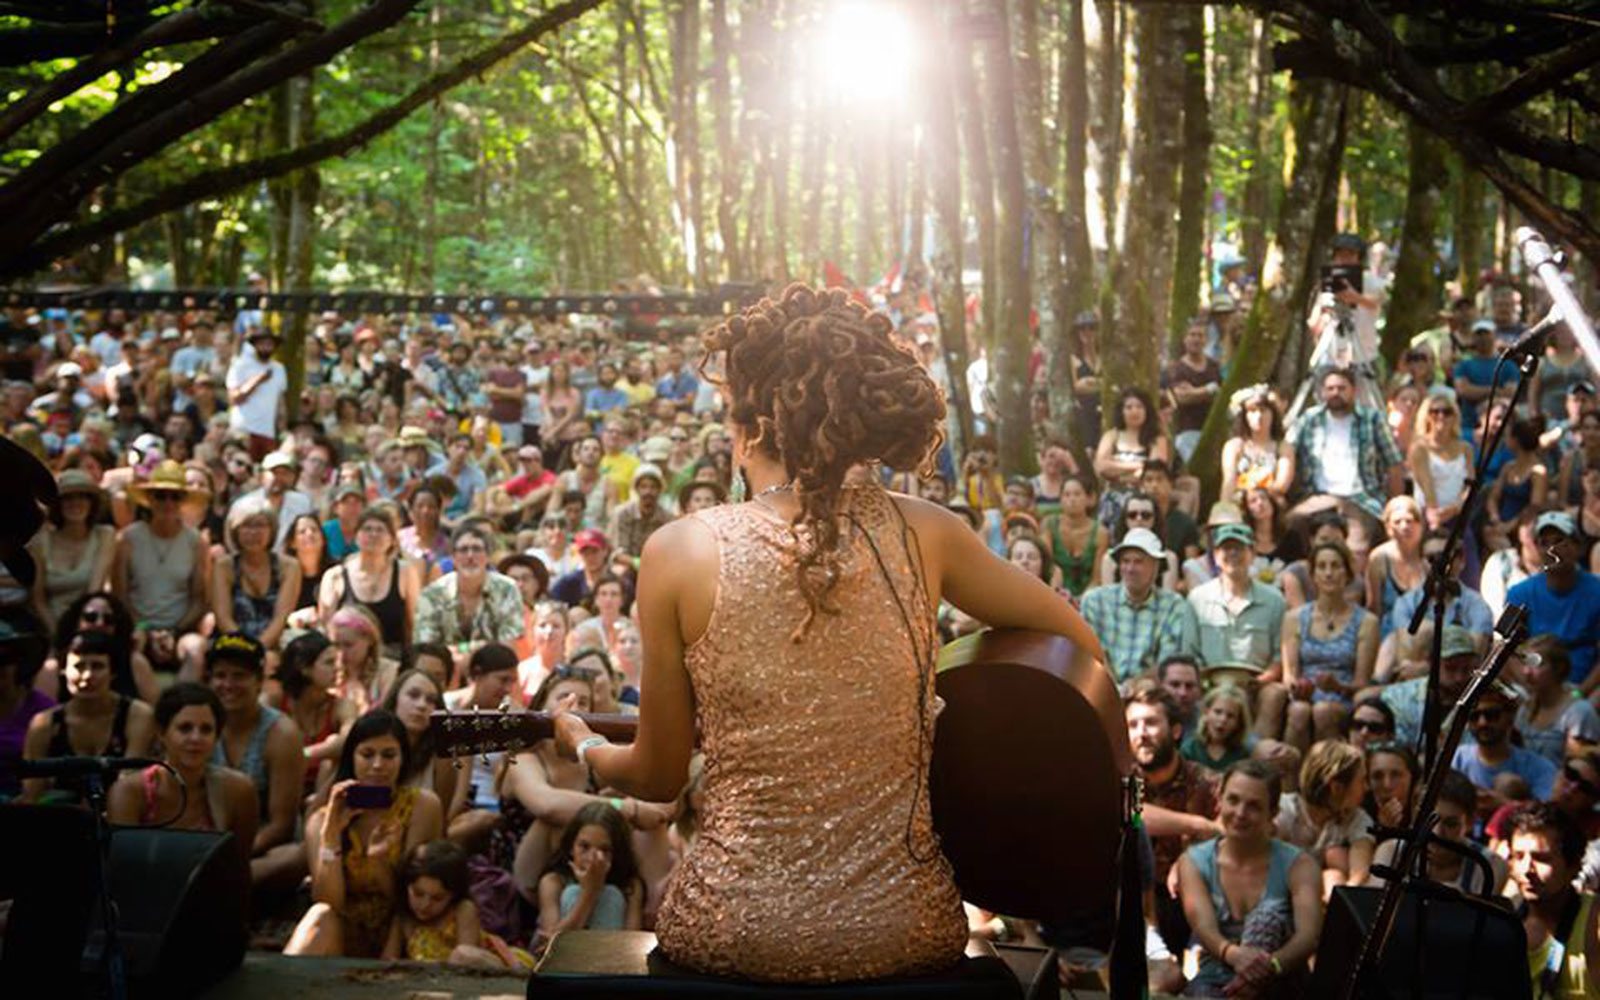 America's Best Cities for Festivals: Portland, OR